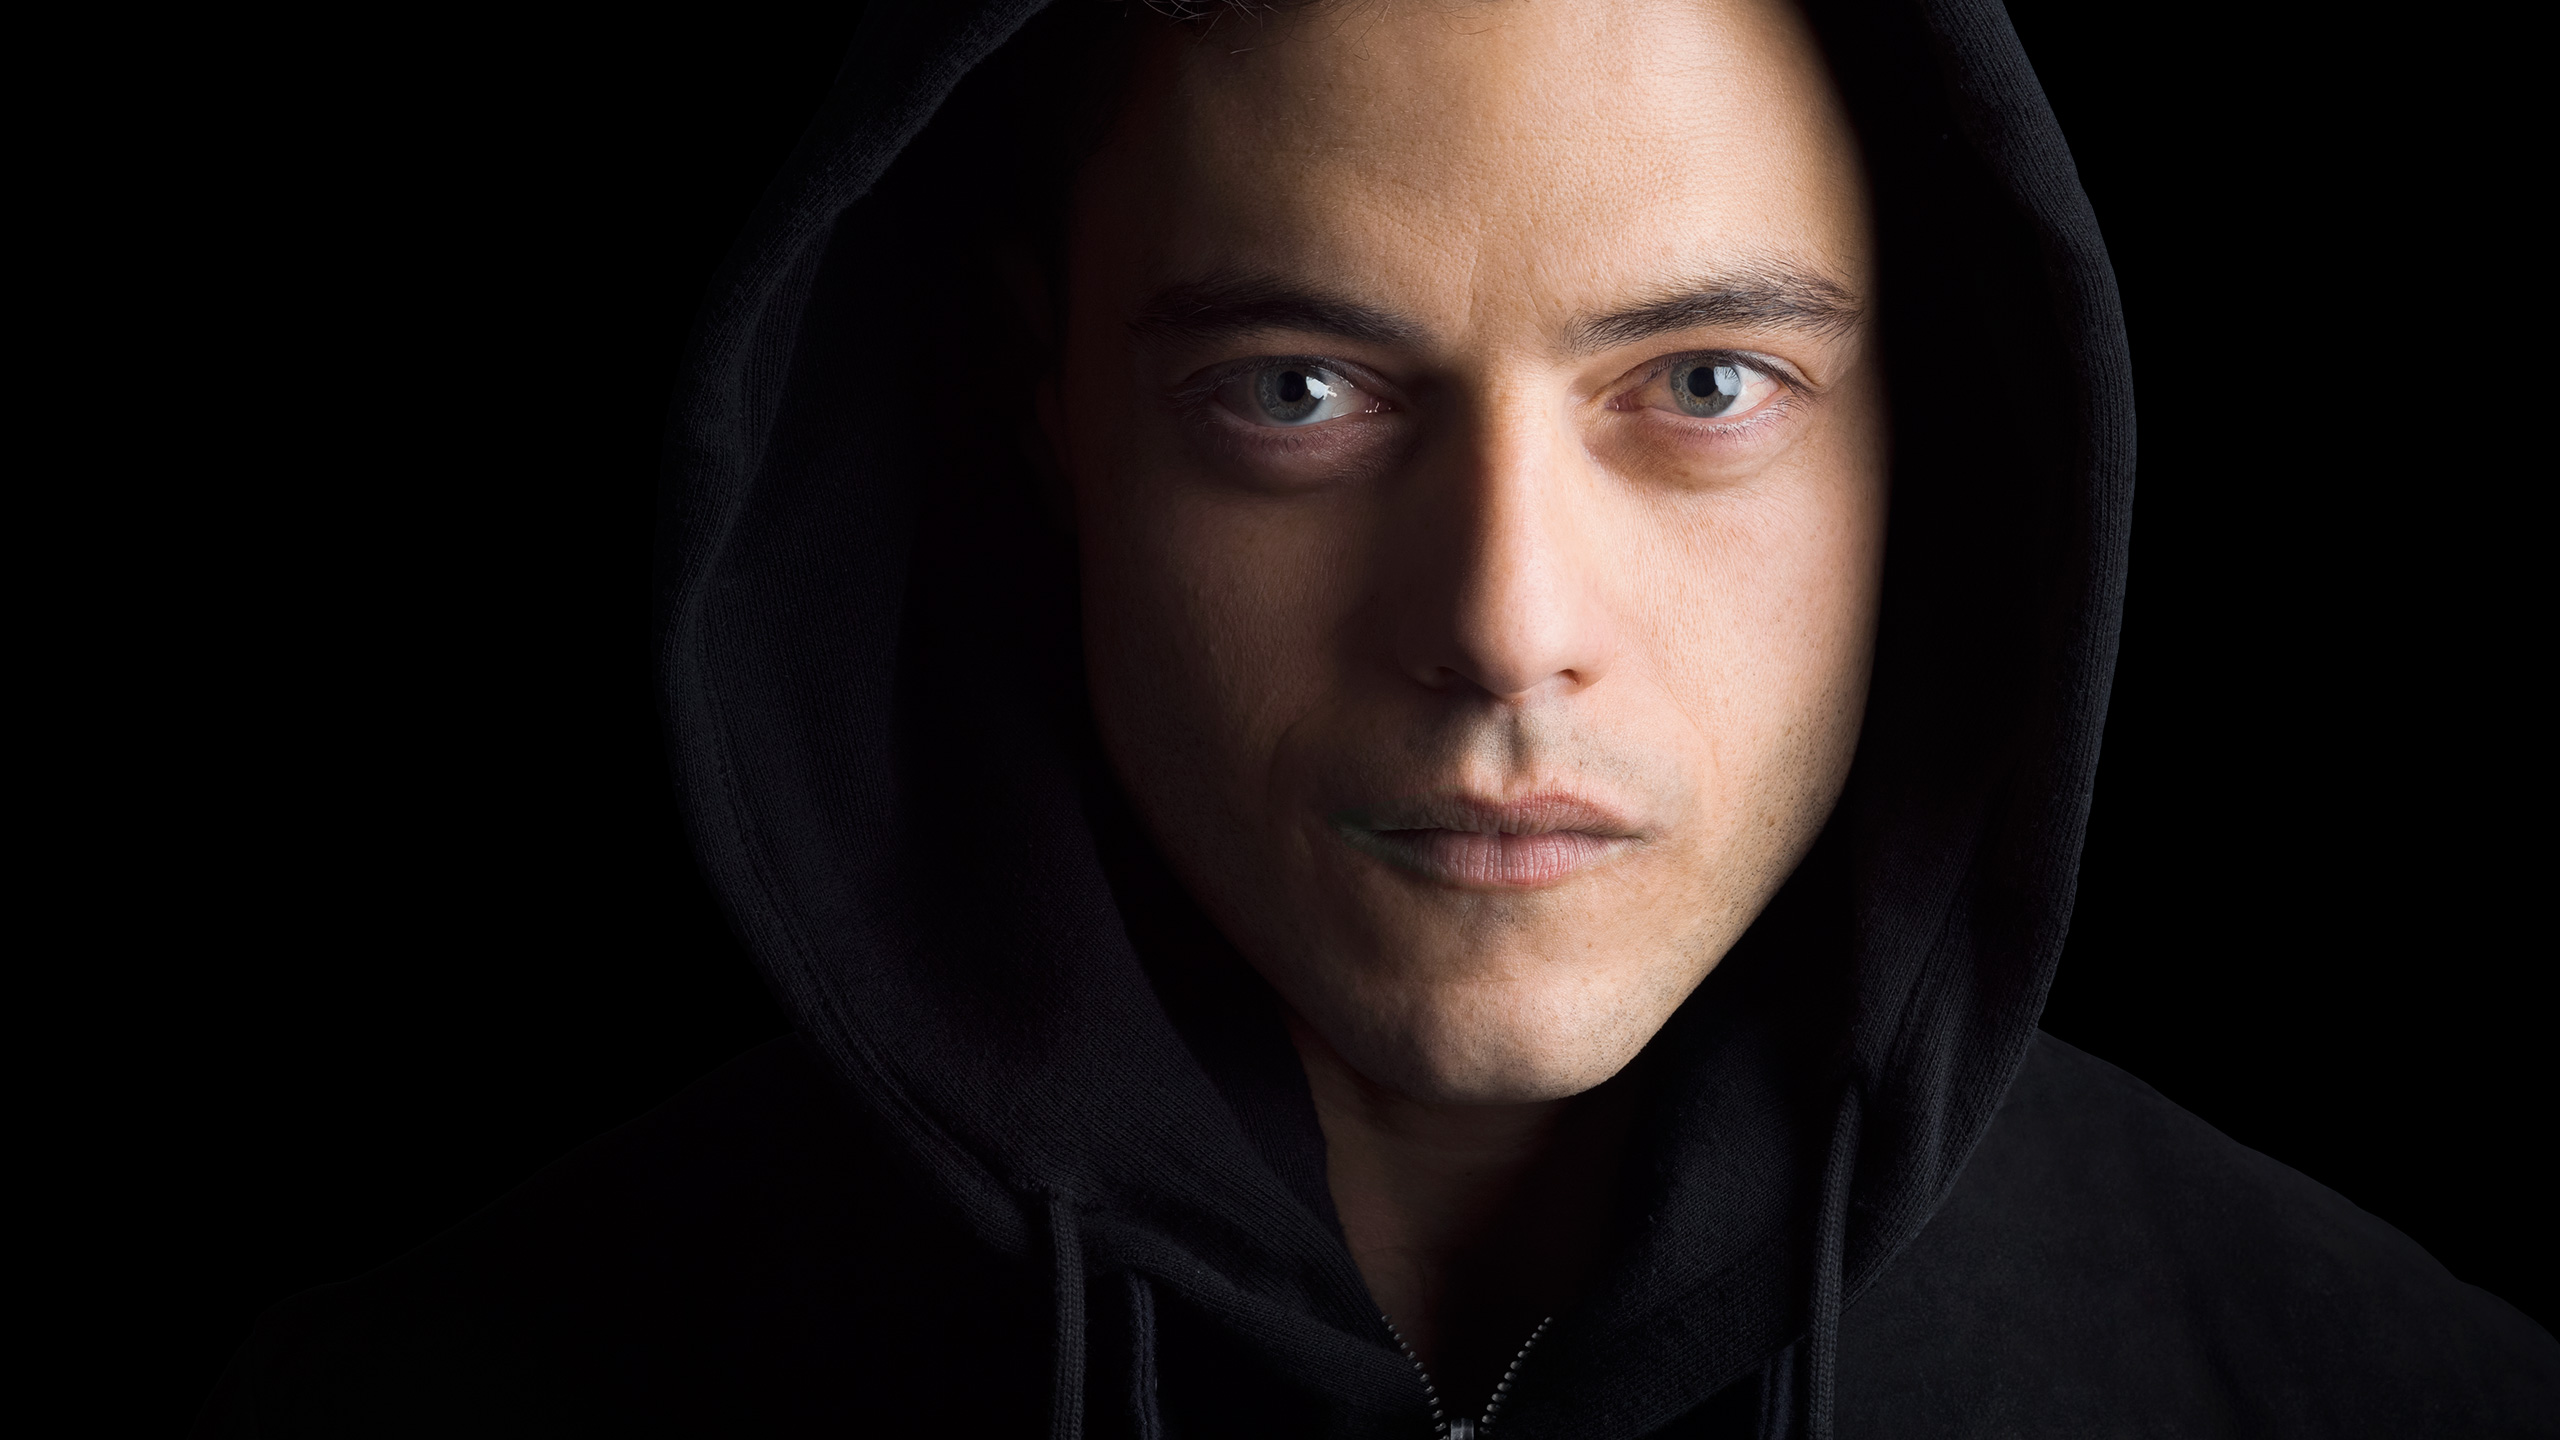 Mr. Robot's second season is heading into even darker territory